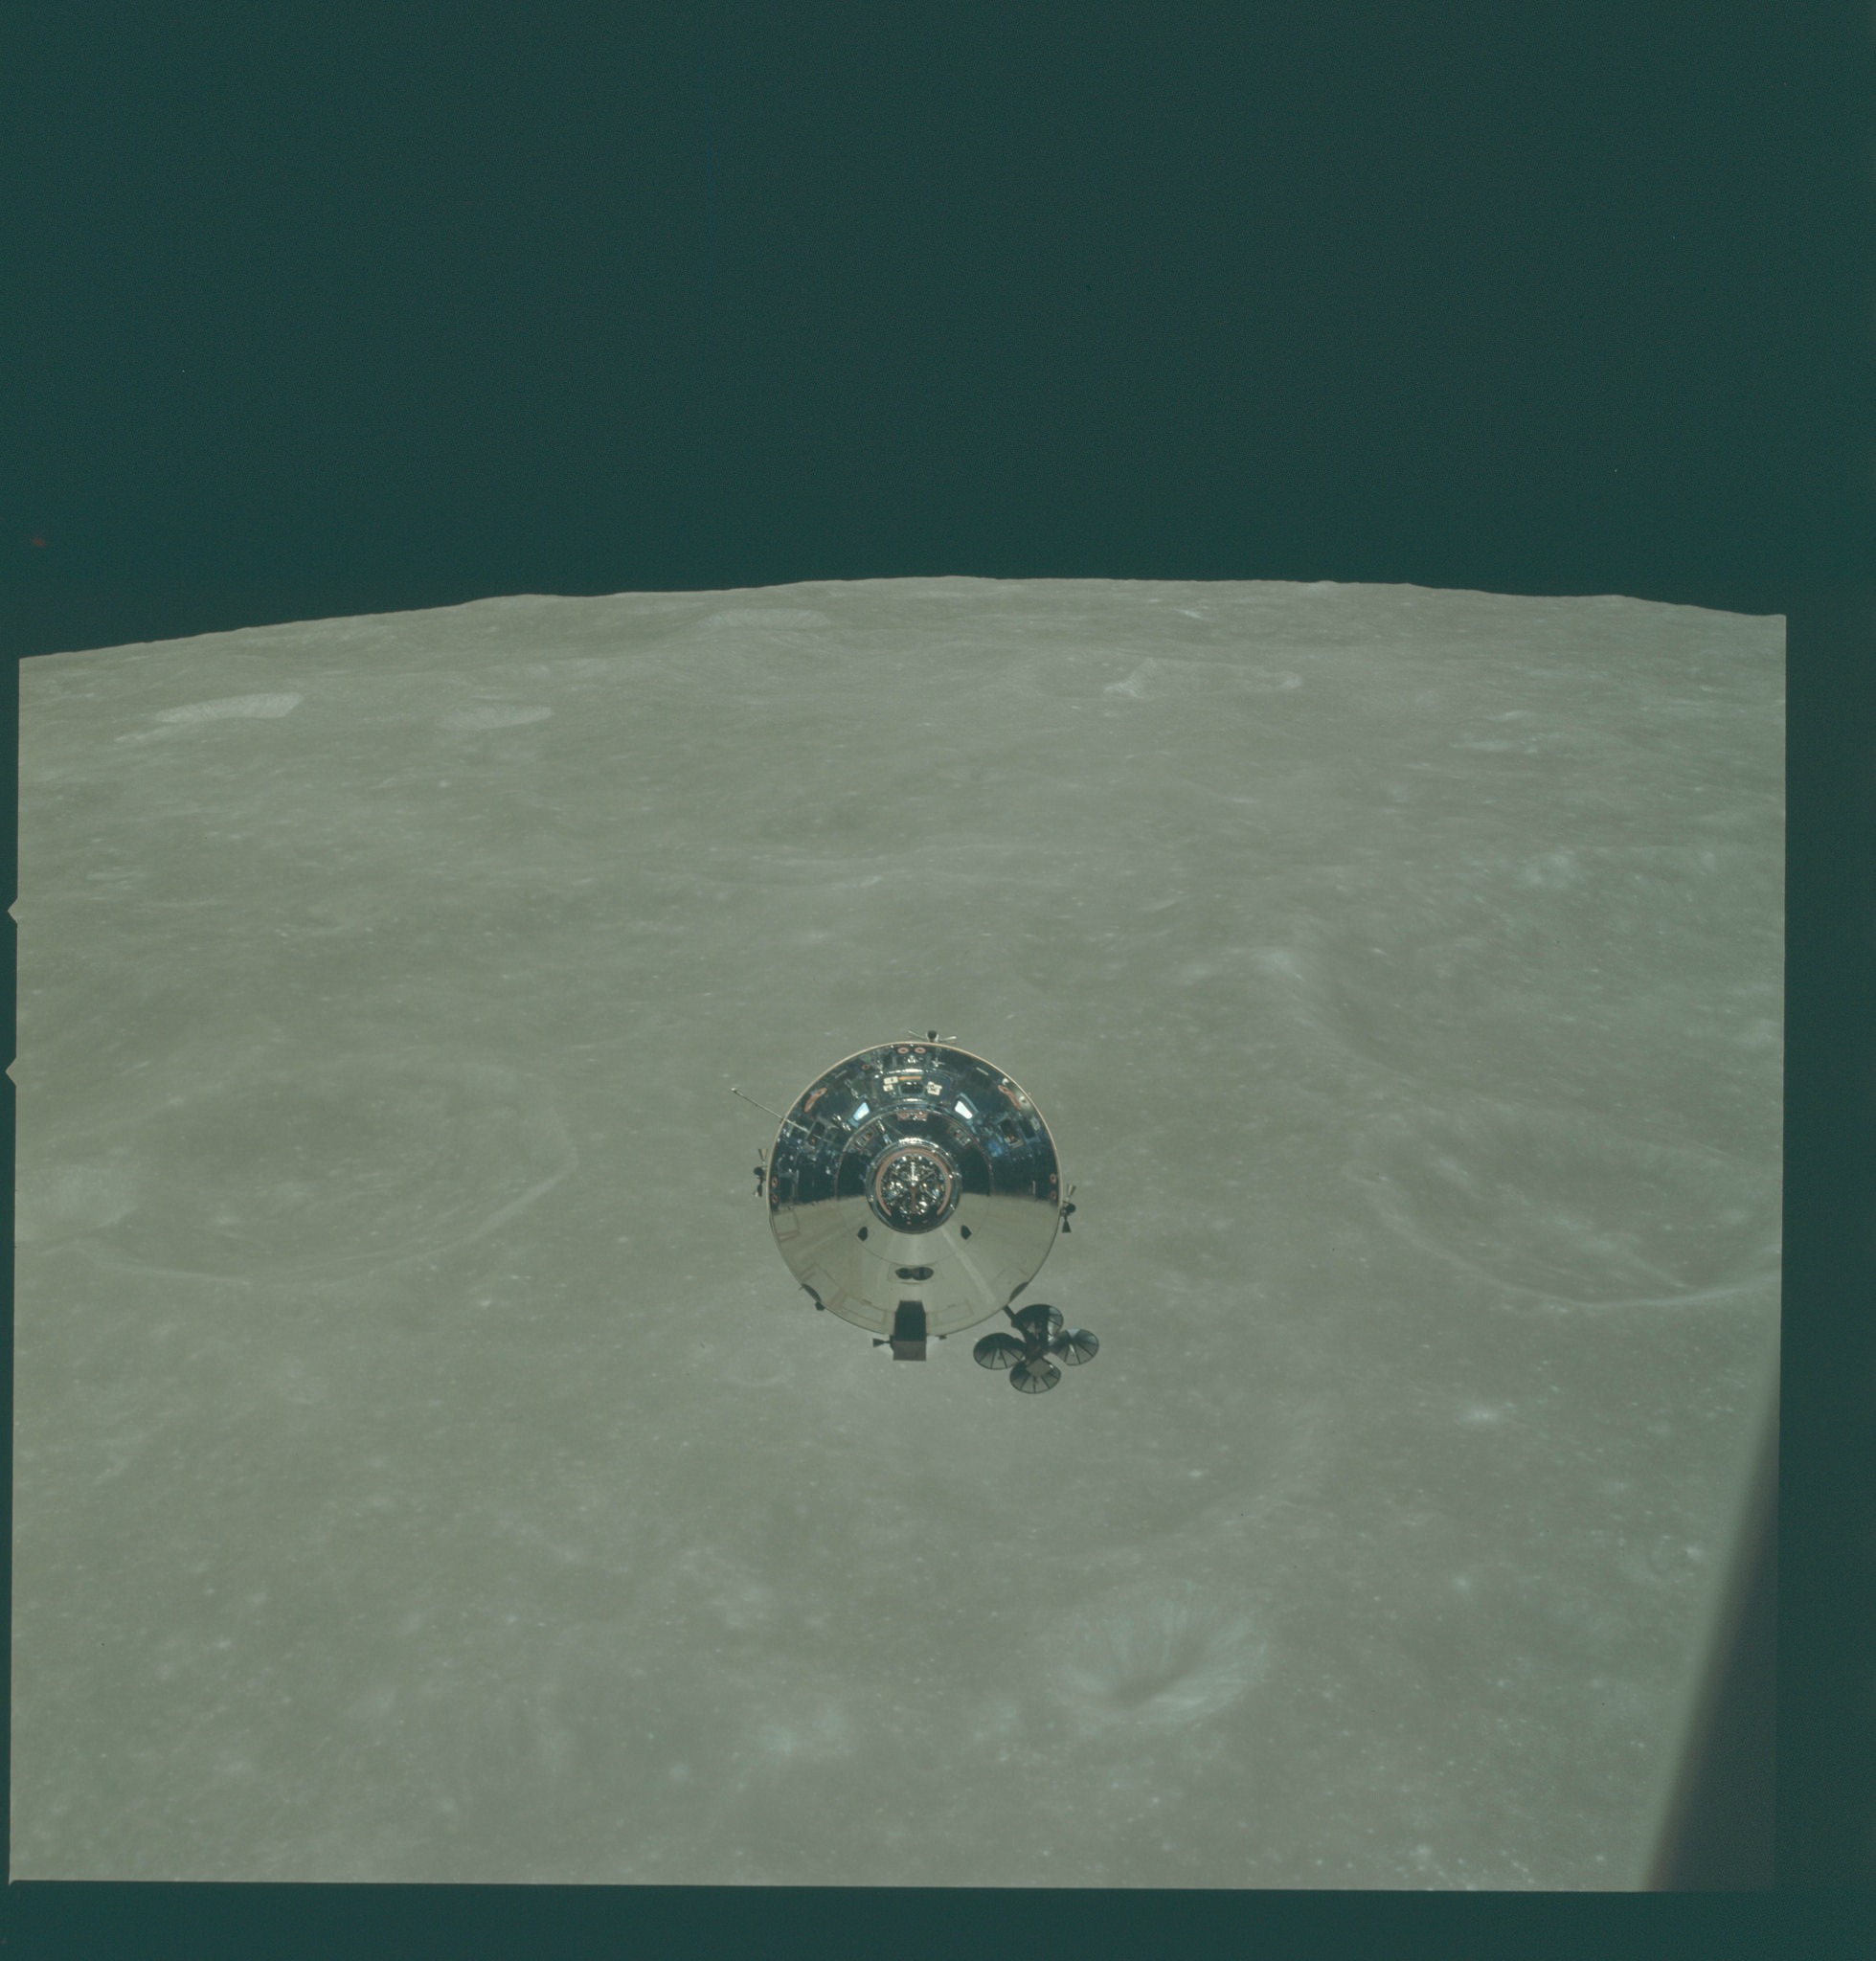 Mission Apollo 10 (Mai 1969) Photo : NASA